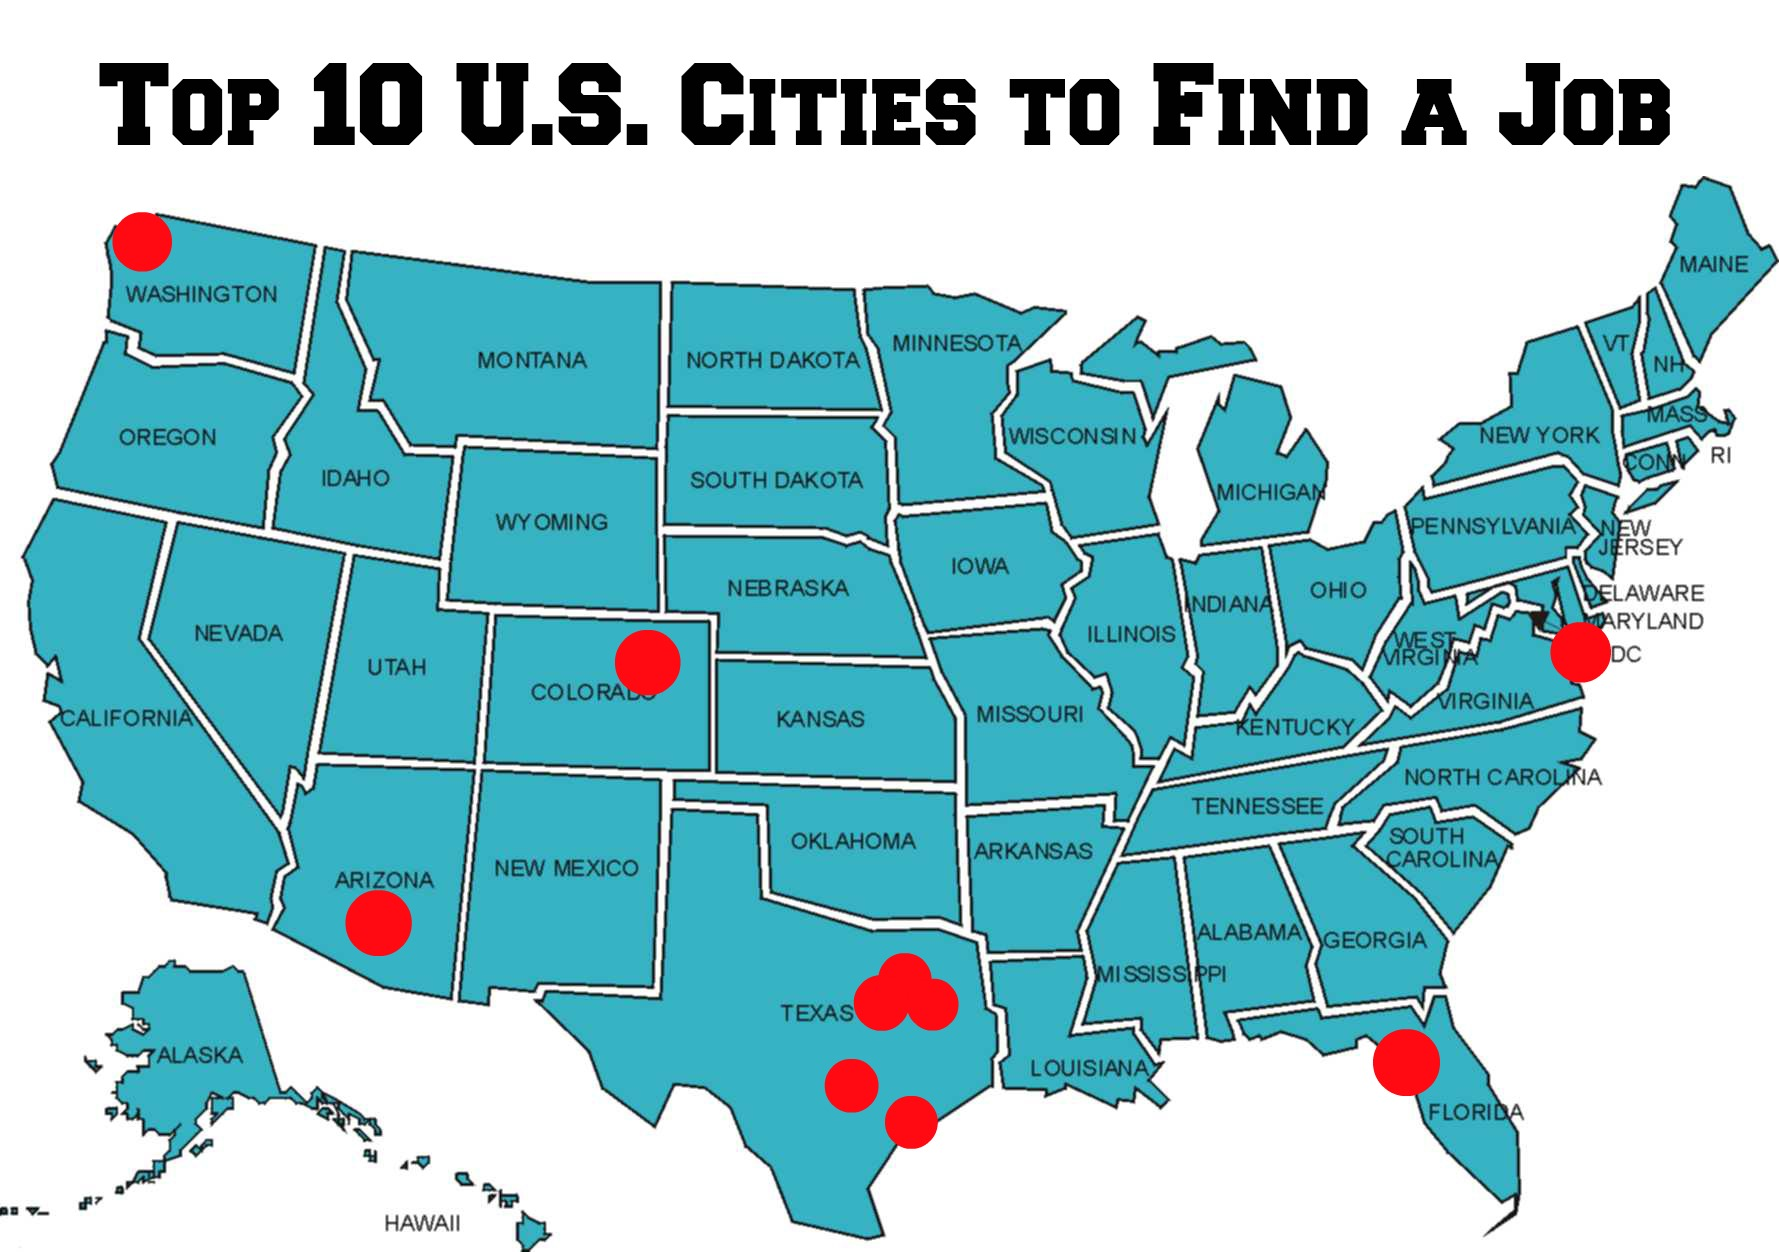 Top 10 U.S. Cities to Find a Job